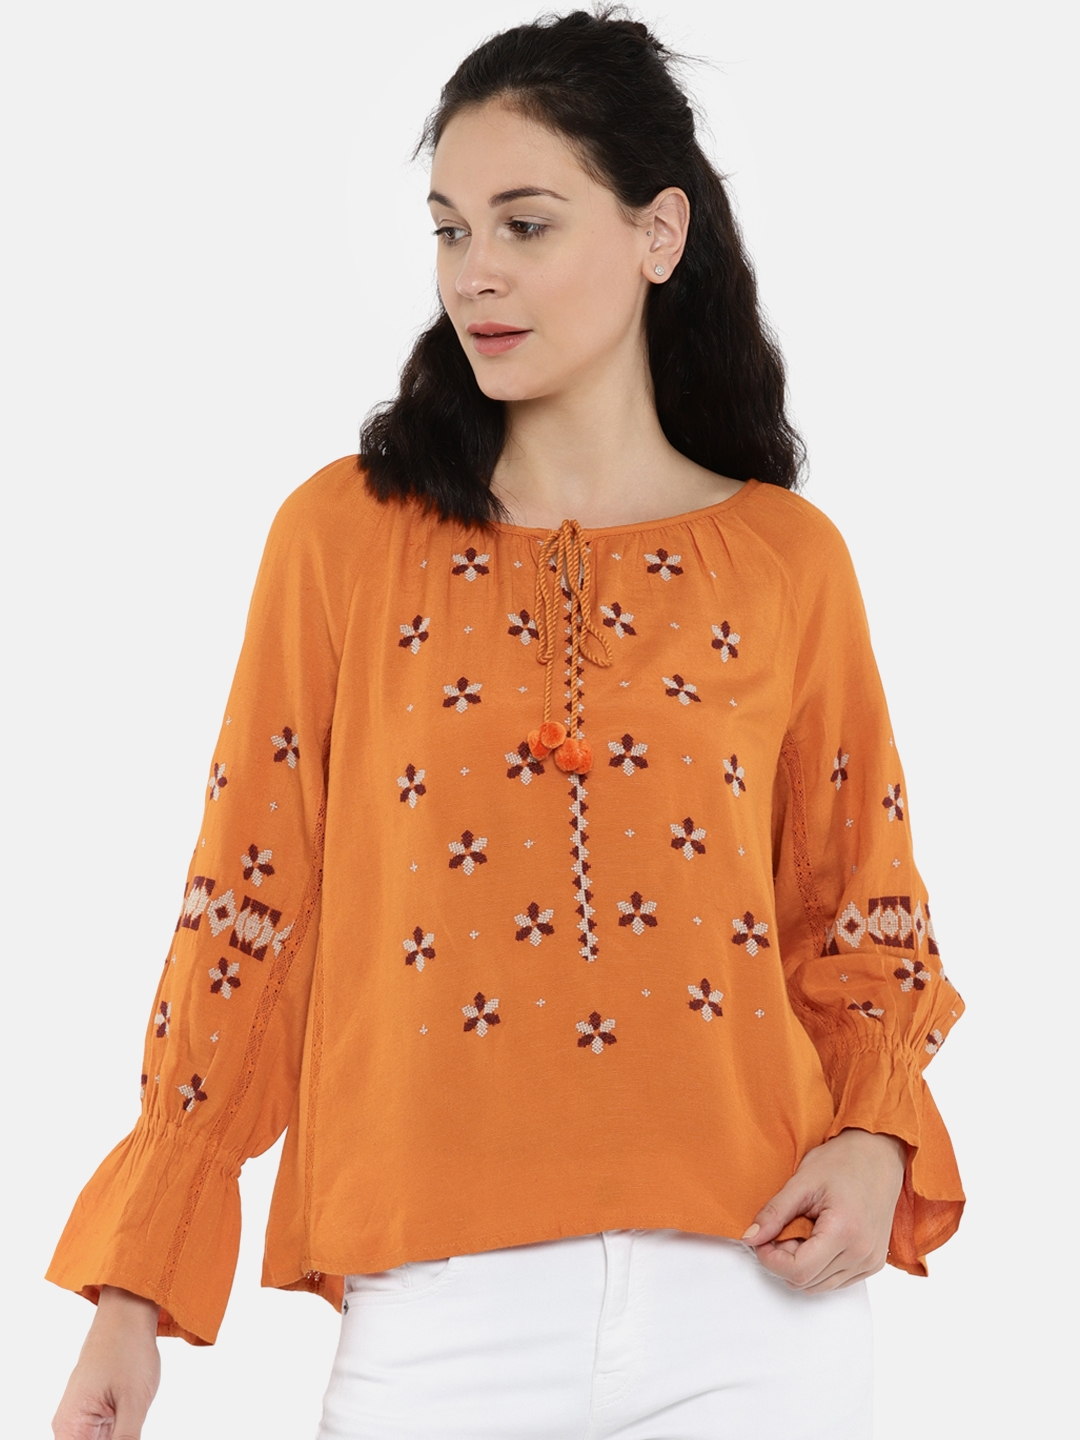 ffb23ad90a2672 Buy ONLY Women Orange Self Design Top - Tops for Women 2492593